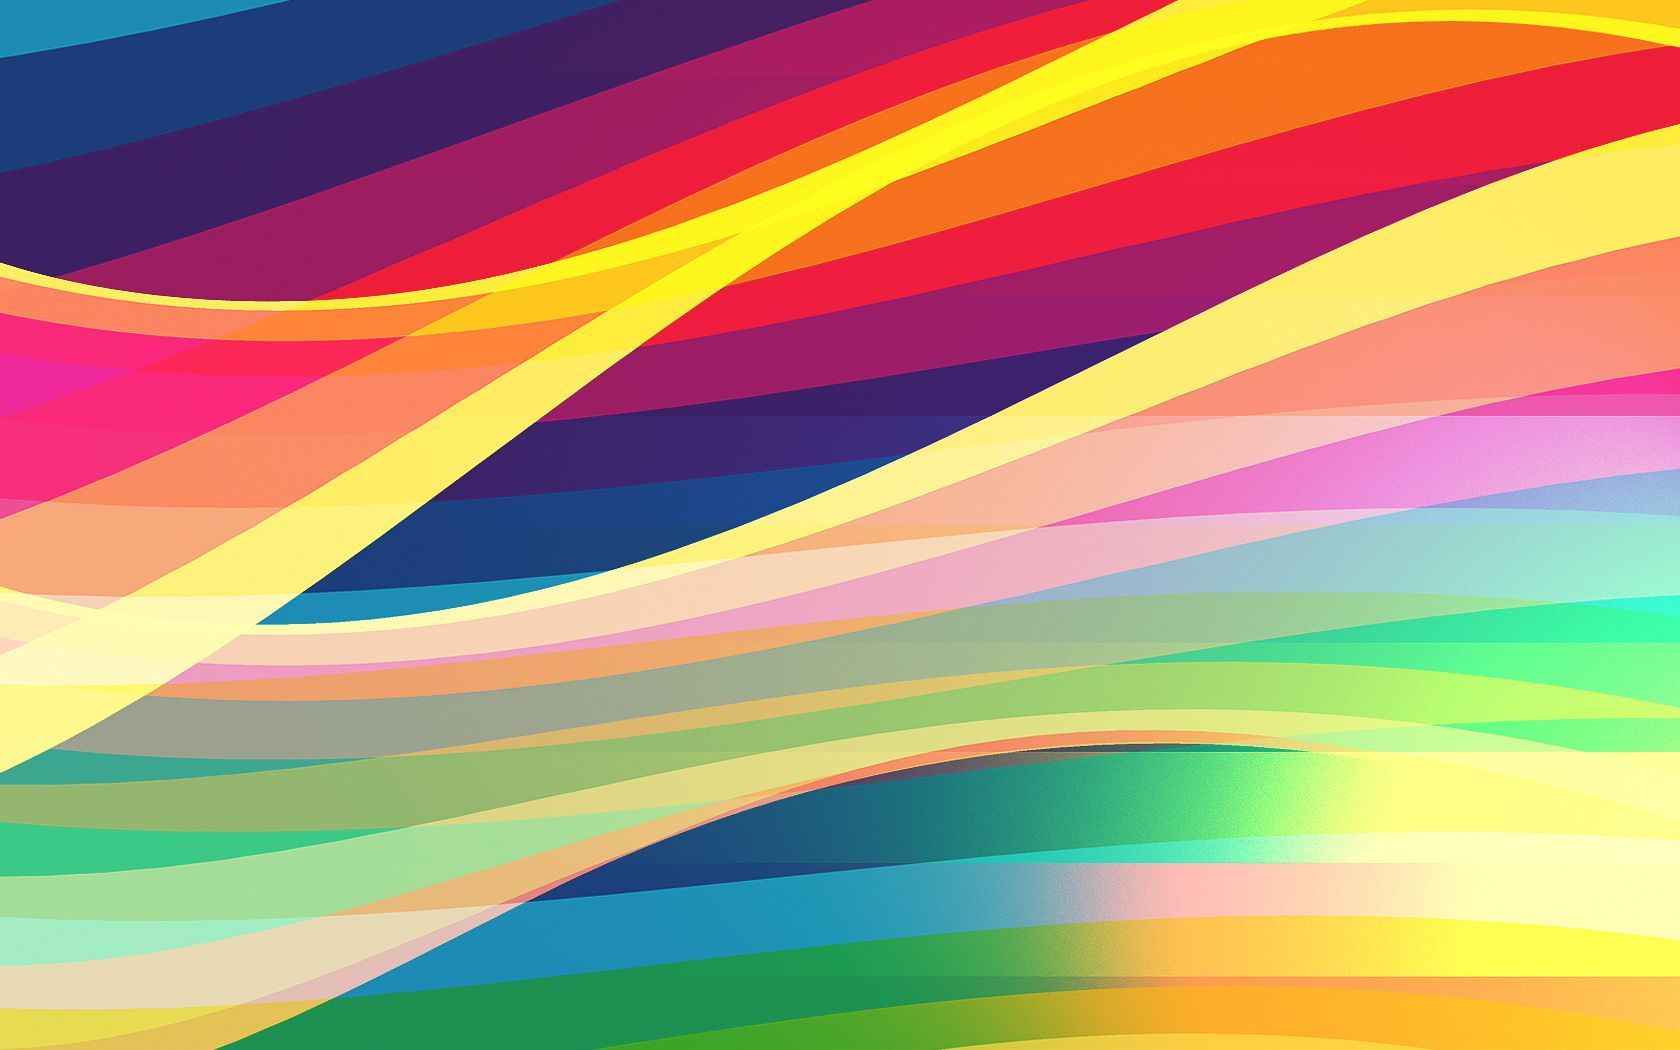 Abstract Colorful Wallpapers